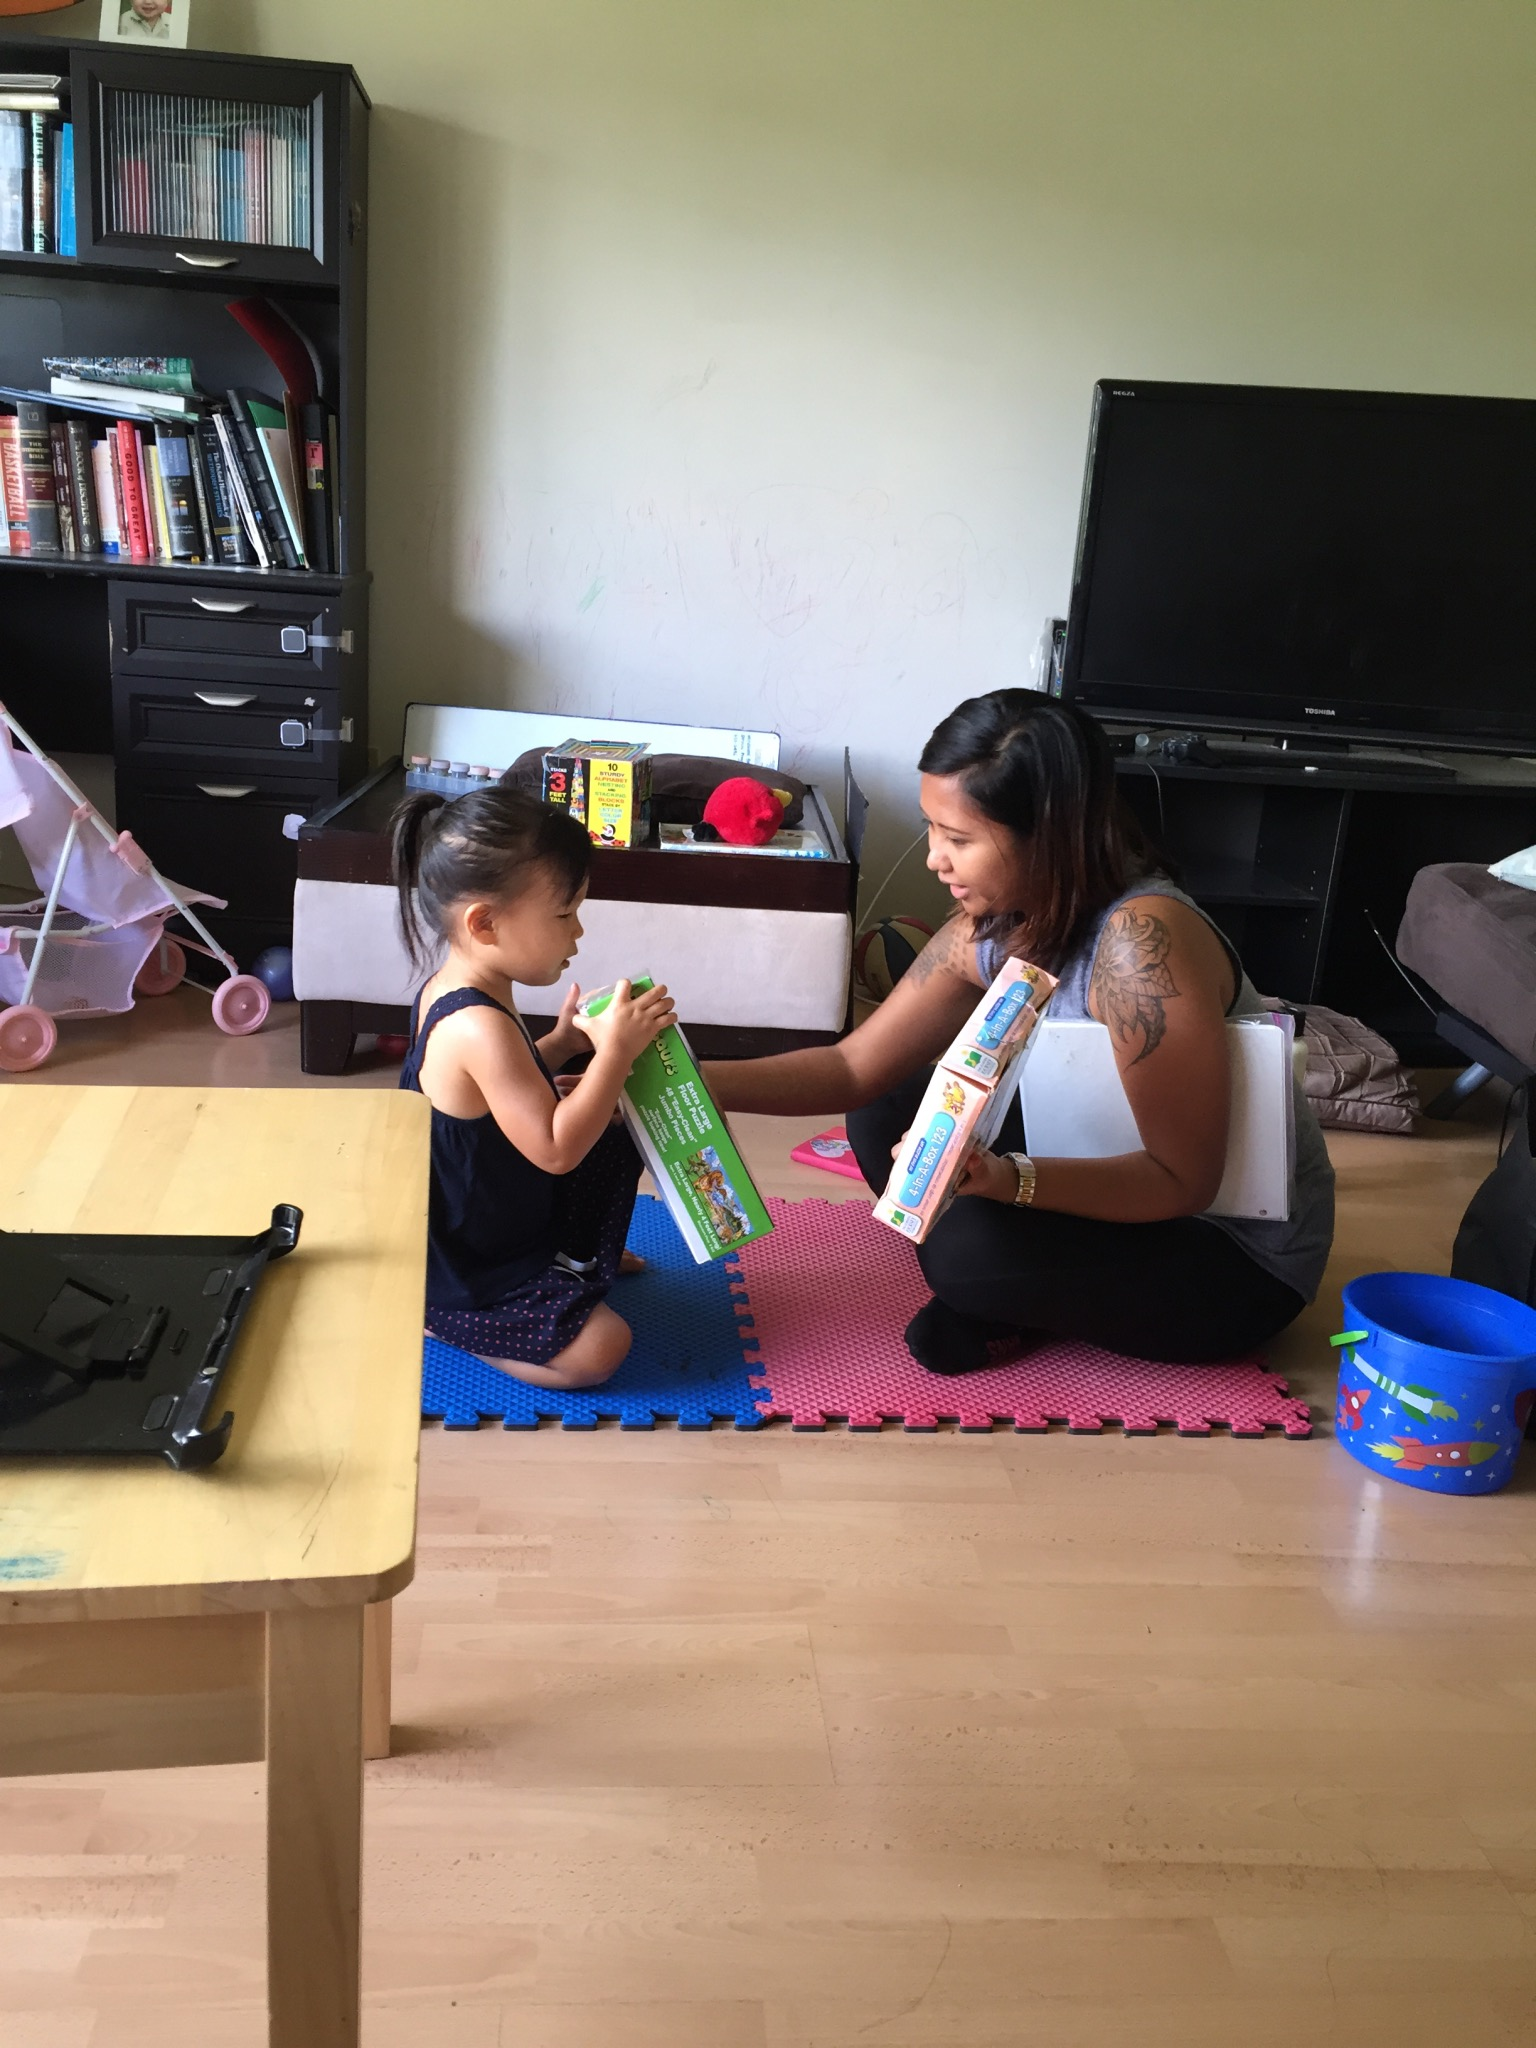 Through Early Intervention she learned to communicate through pictures, sign language, and simple words. Here she is telling the teacher which puzzle she wants to do.